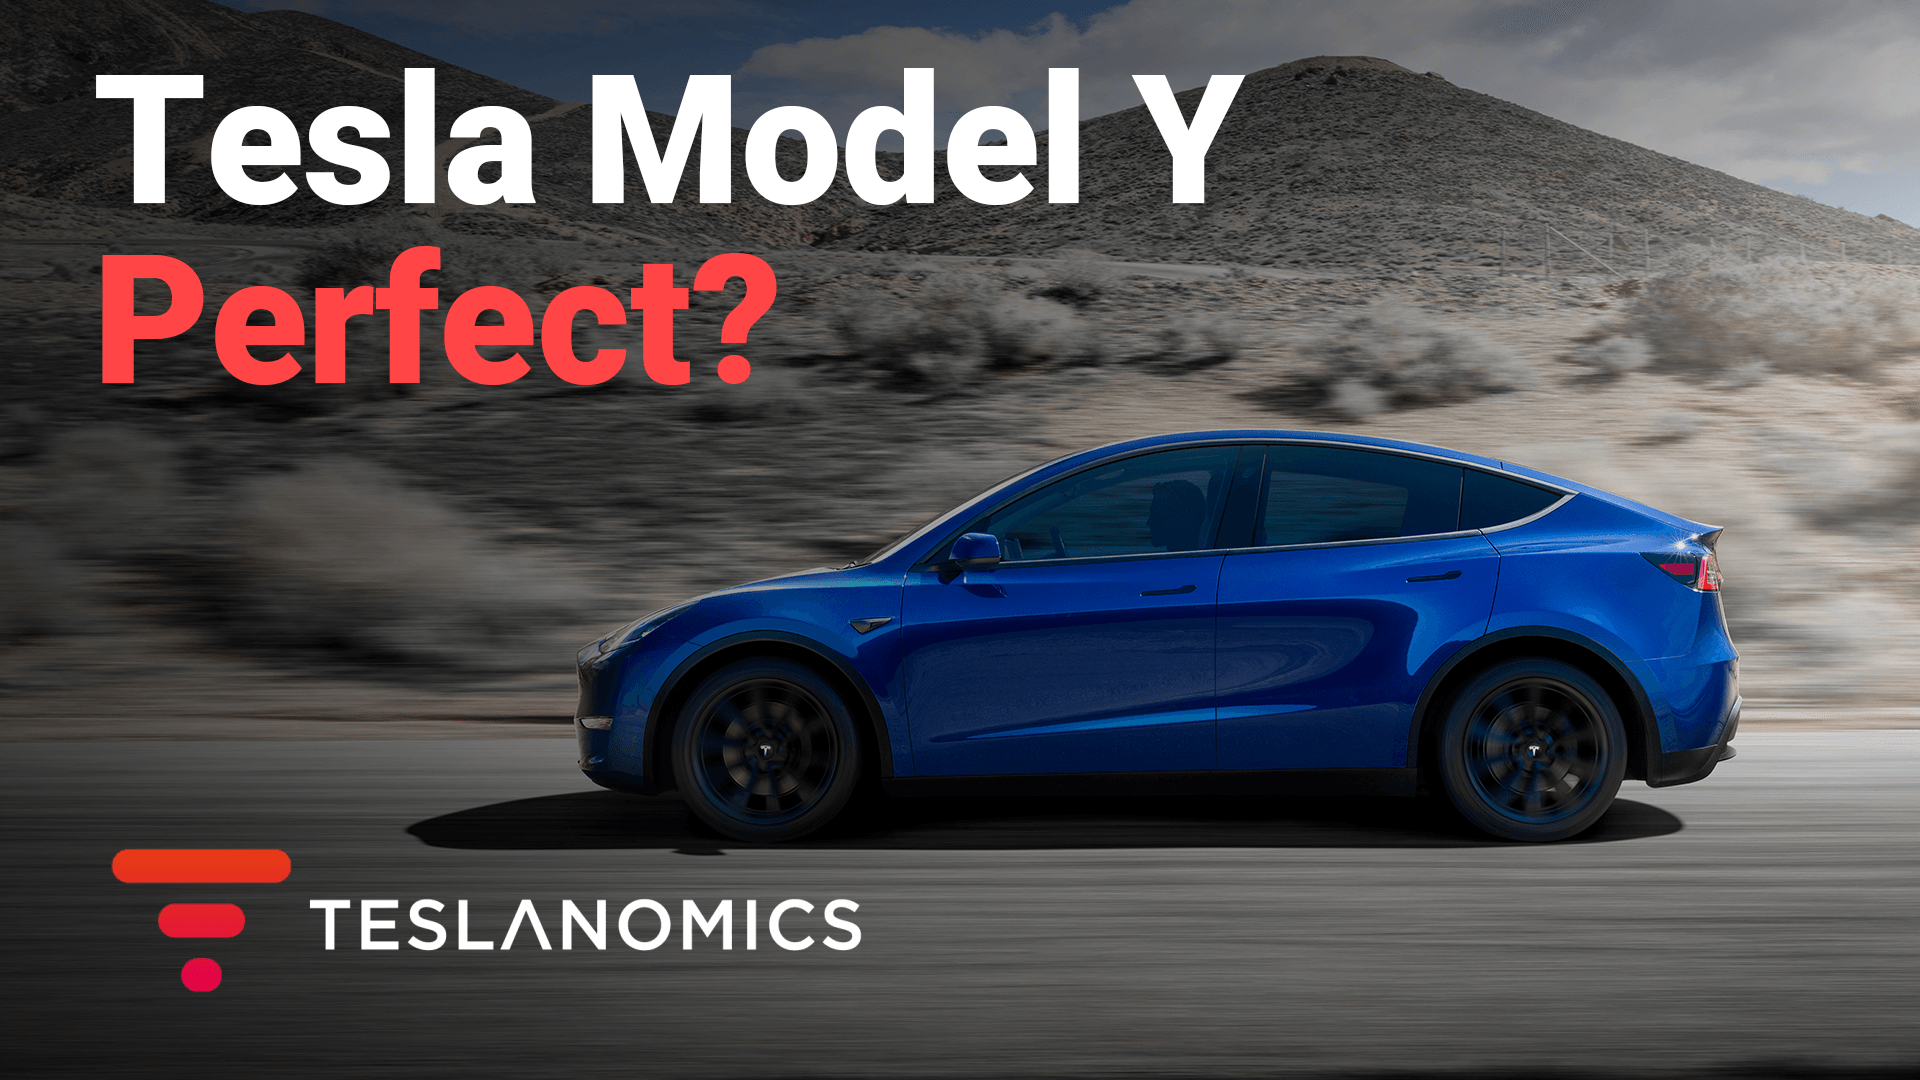 Is Tesla Model Y the Perfect Tesla? – Teslanomics